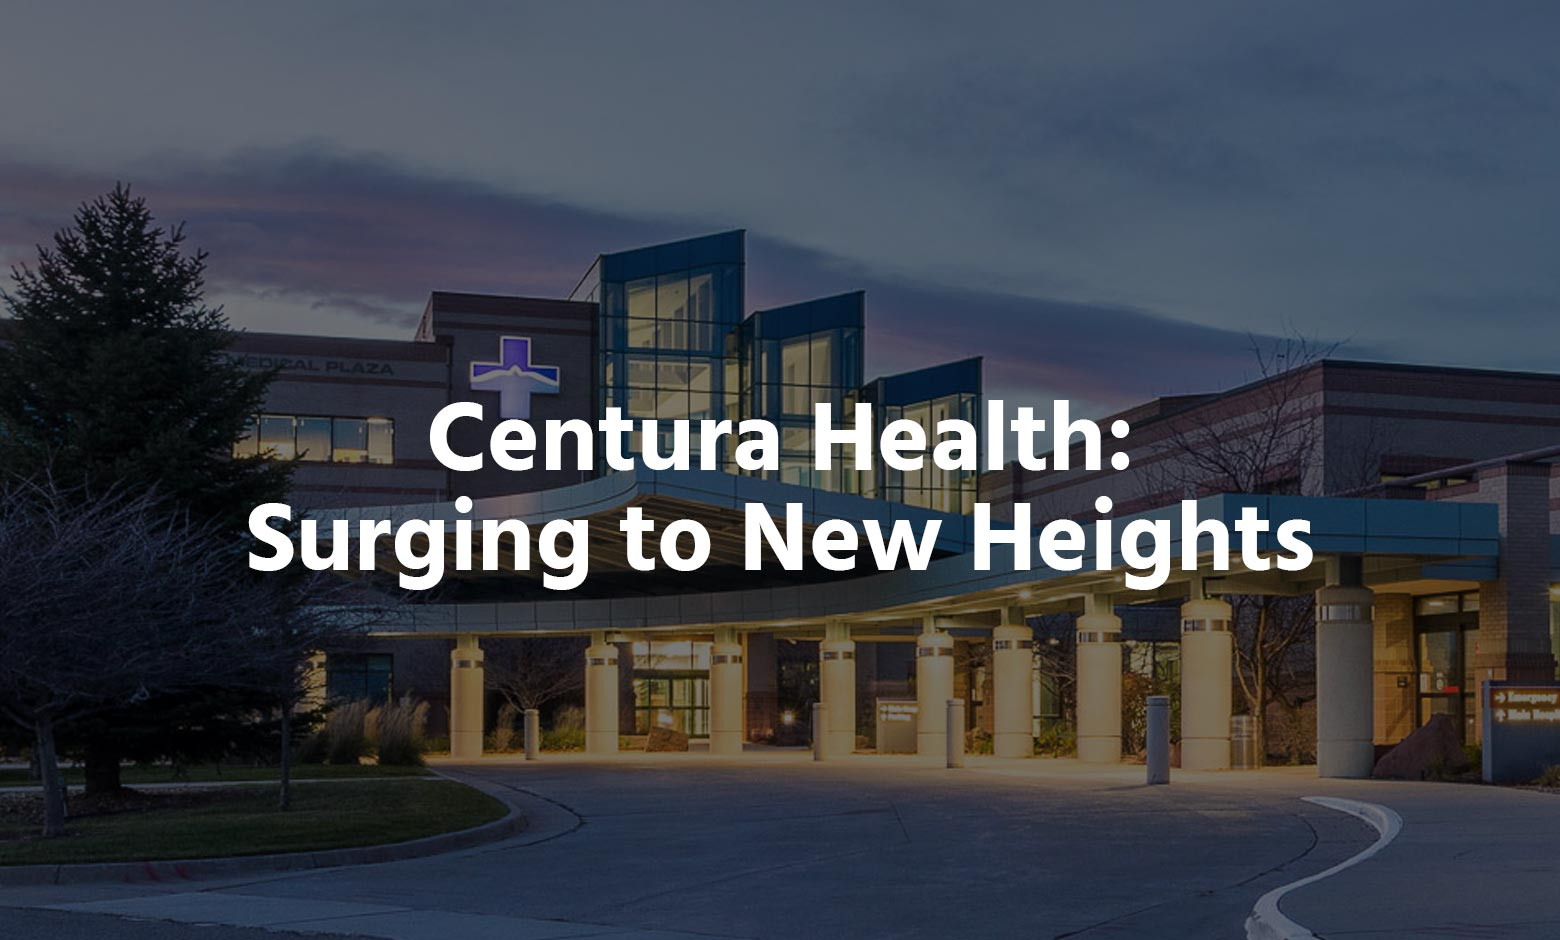 Centura Health & Surgio partnership featured on OrthoSpineNews